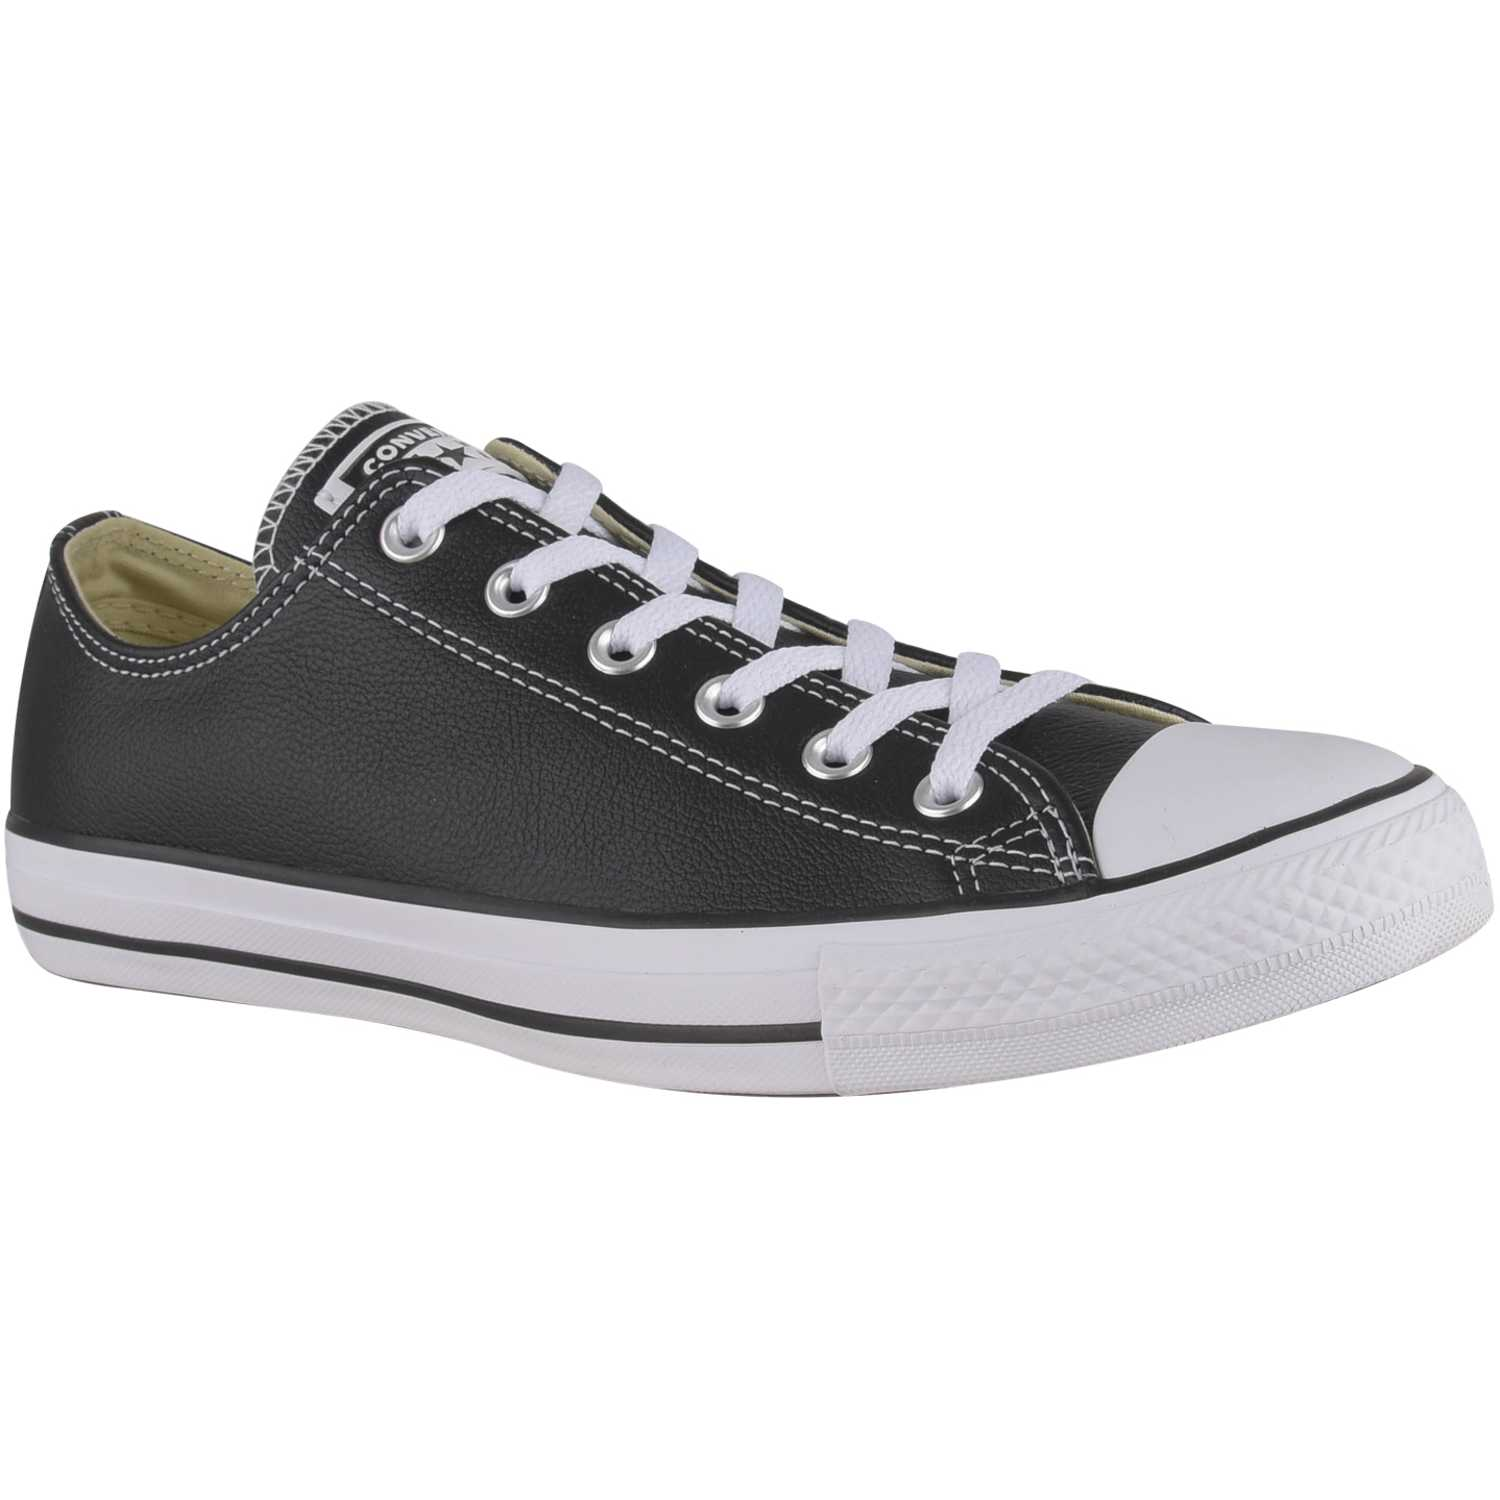 Casual de Jovencita Converse Negro / blanco ctas leather ox